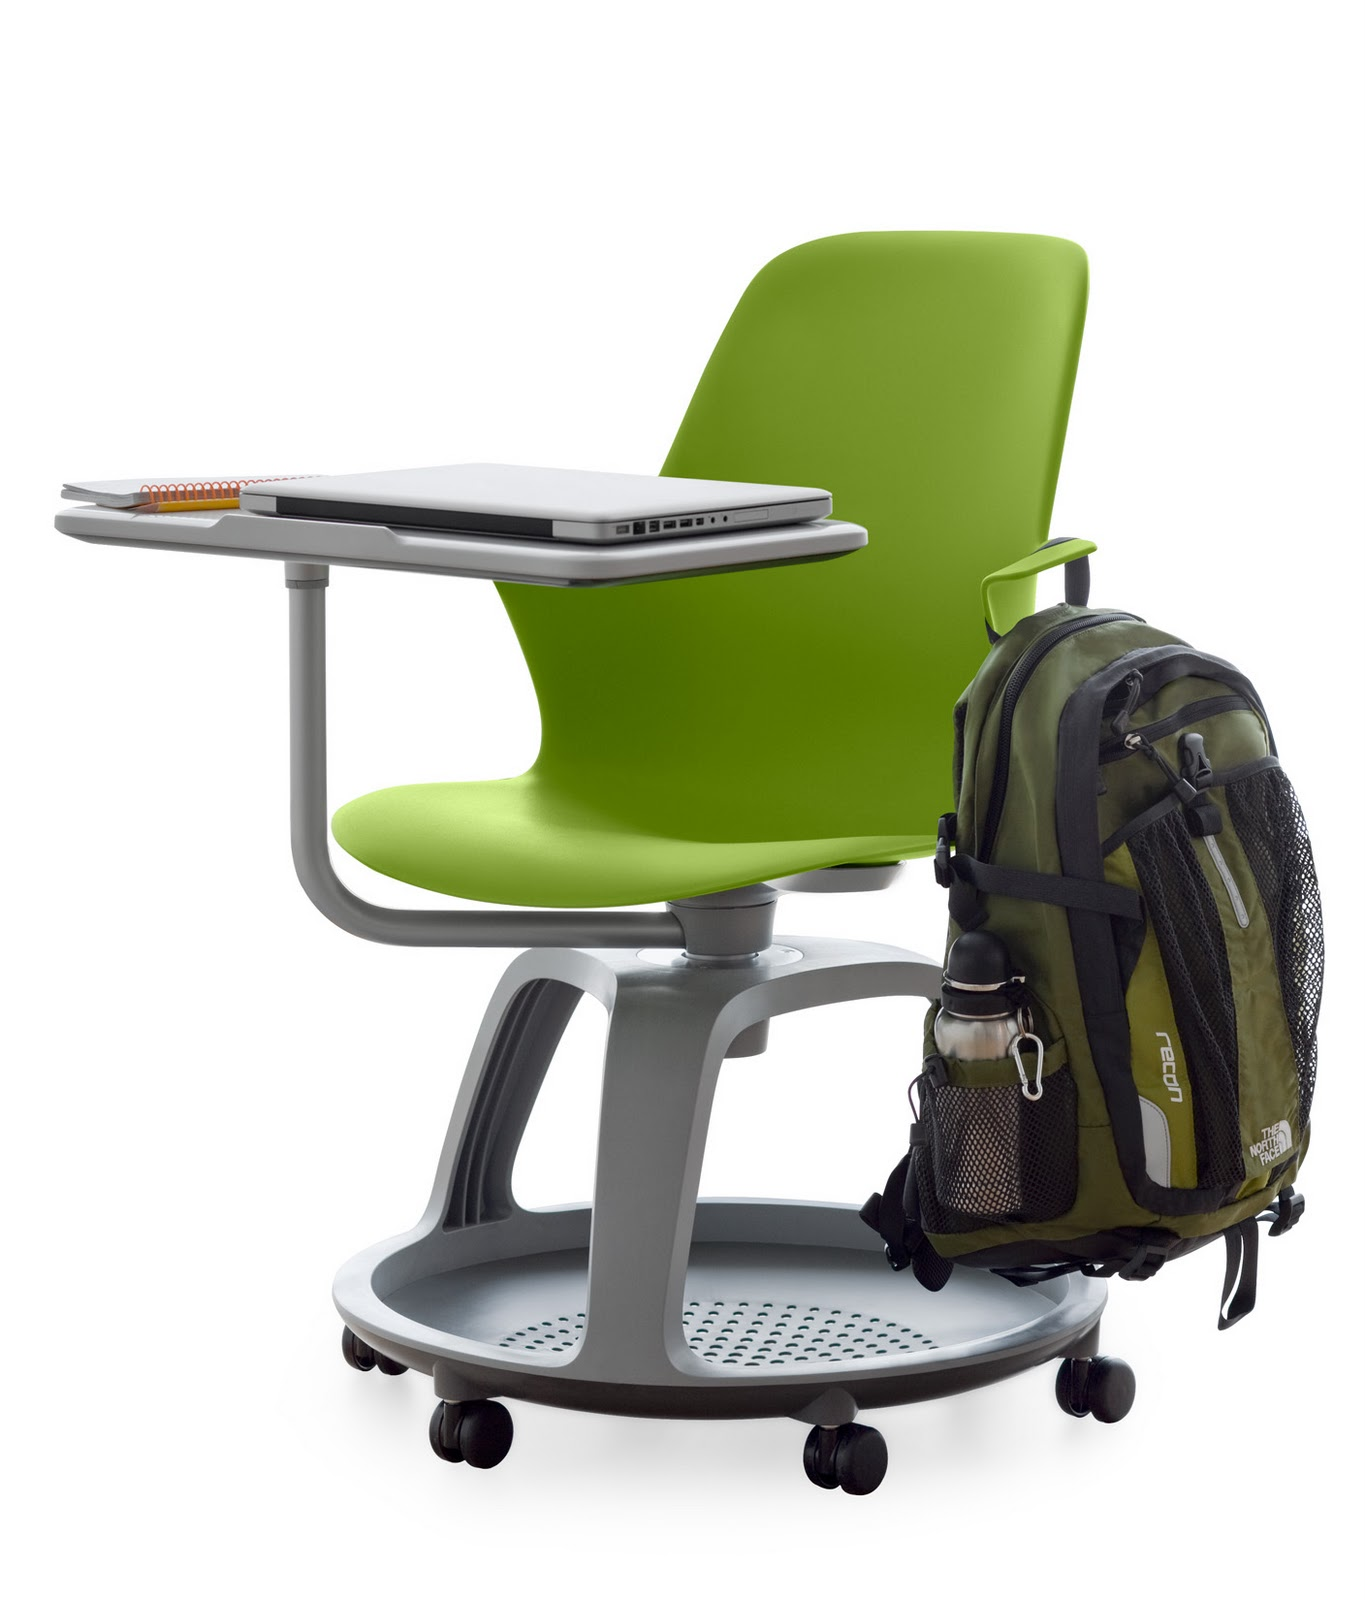 Arbee fice Furniture node seating for the active learning